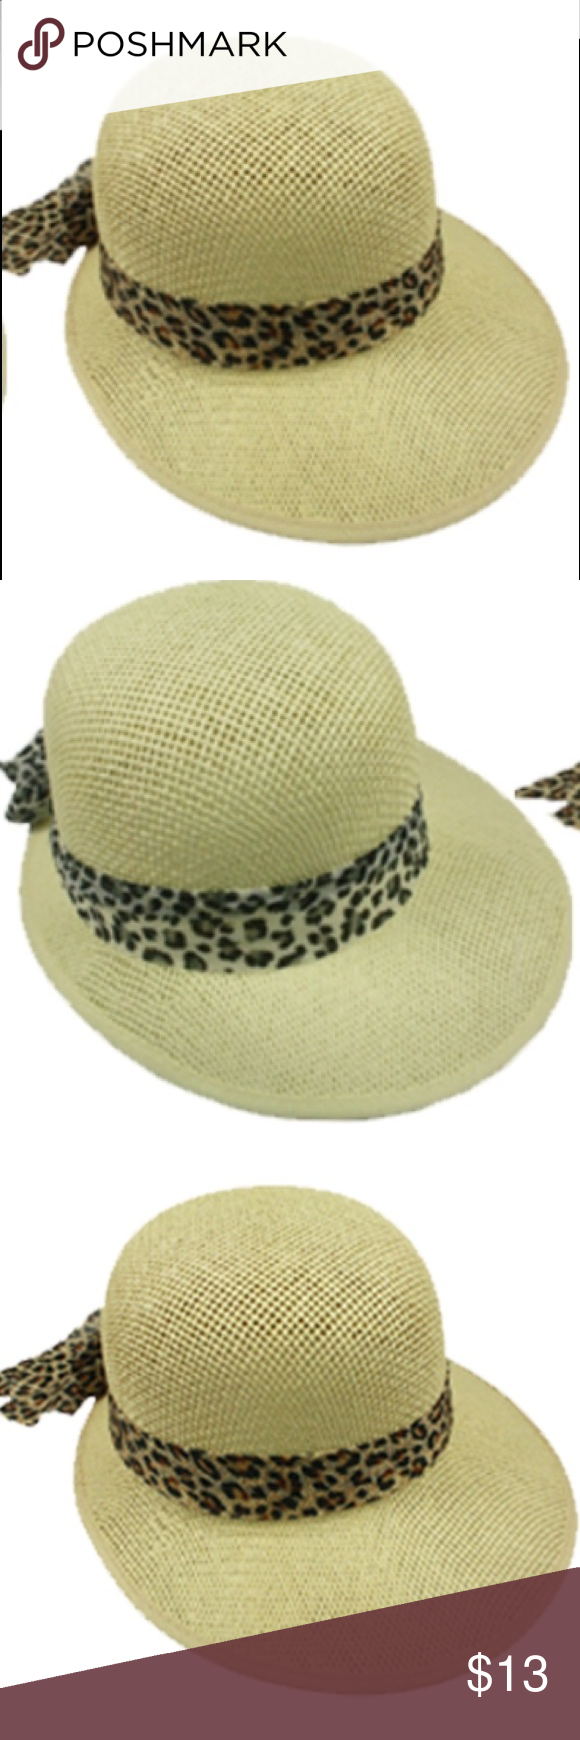 Sumer hat women cap beach brown popular fashion This Hats And Caps Woman Summer  Hats Which 01f91a4c740